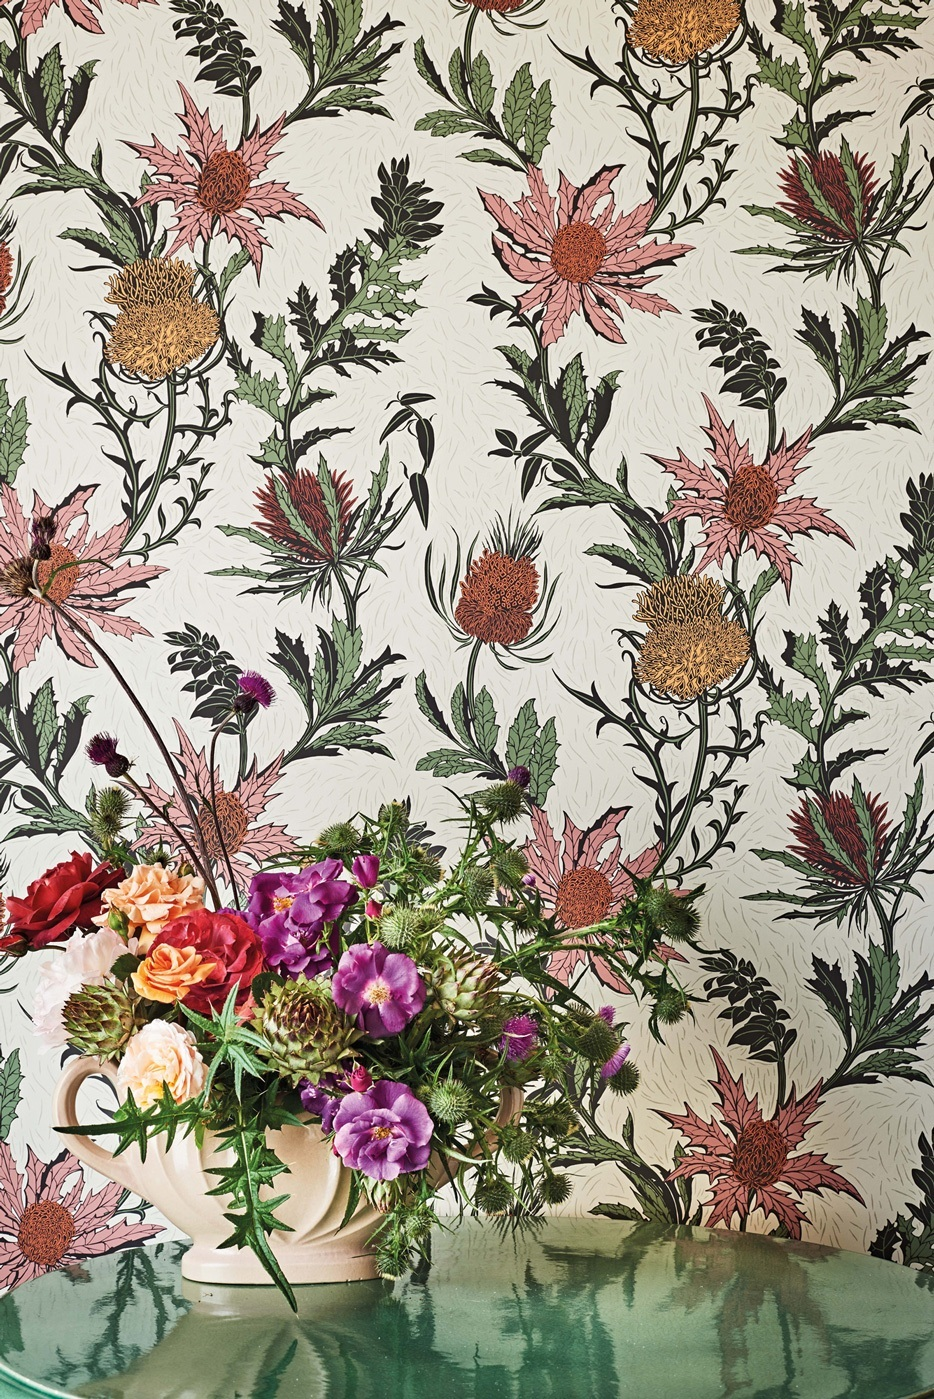 Thistle - Flower pattern - Cole & Son Wallpaper